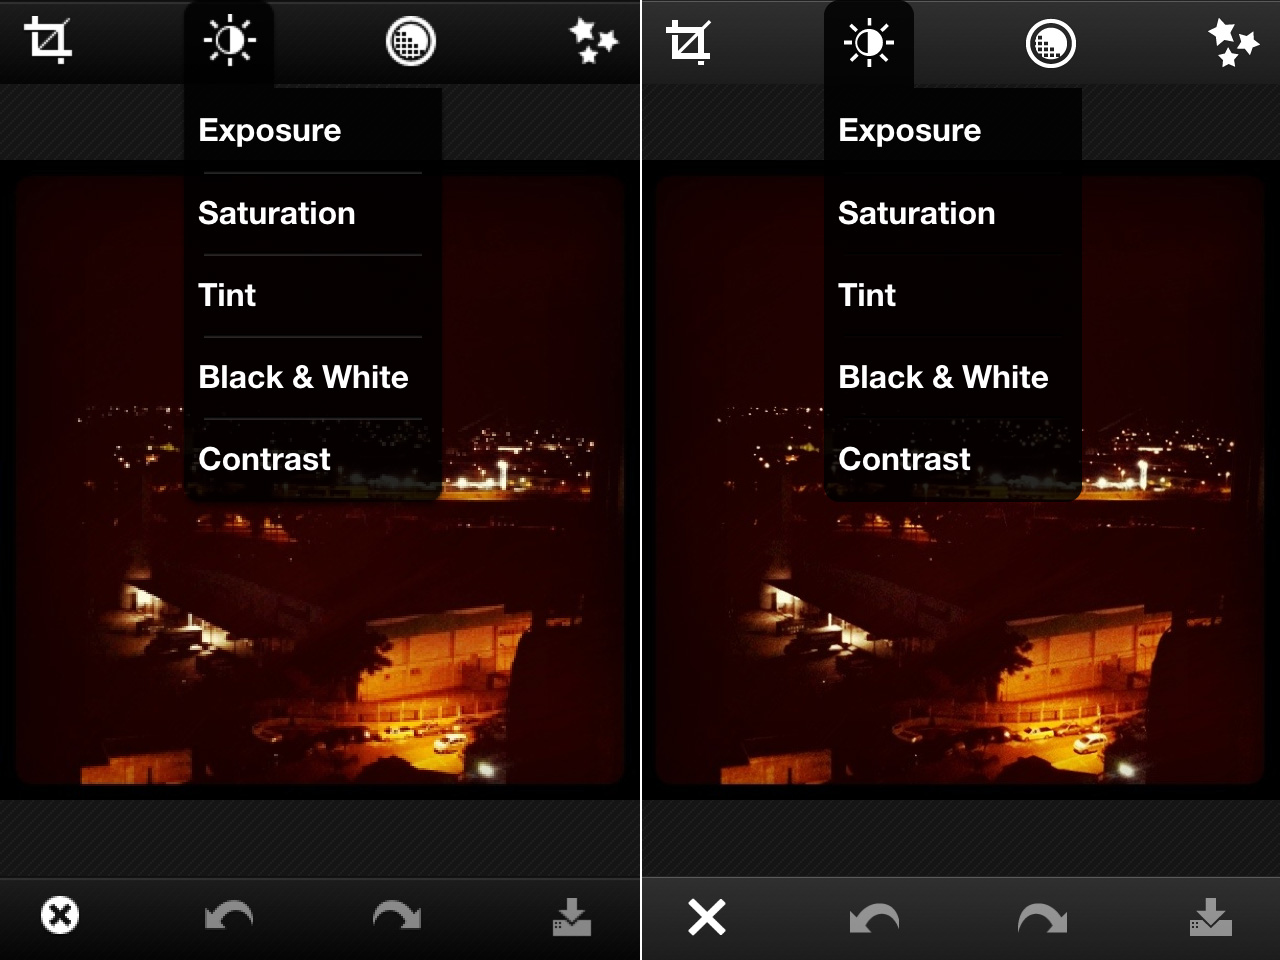 Photoshop Express - iPhone - Antes e depois do Retina Display